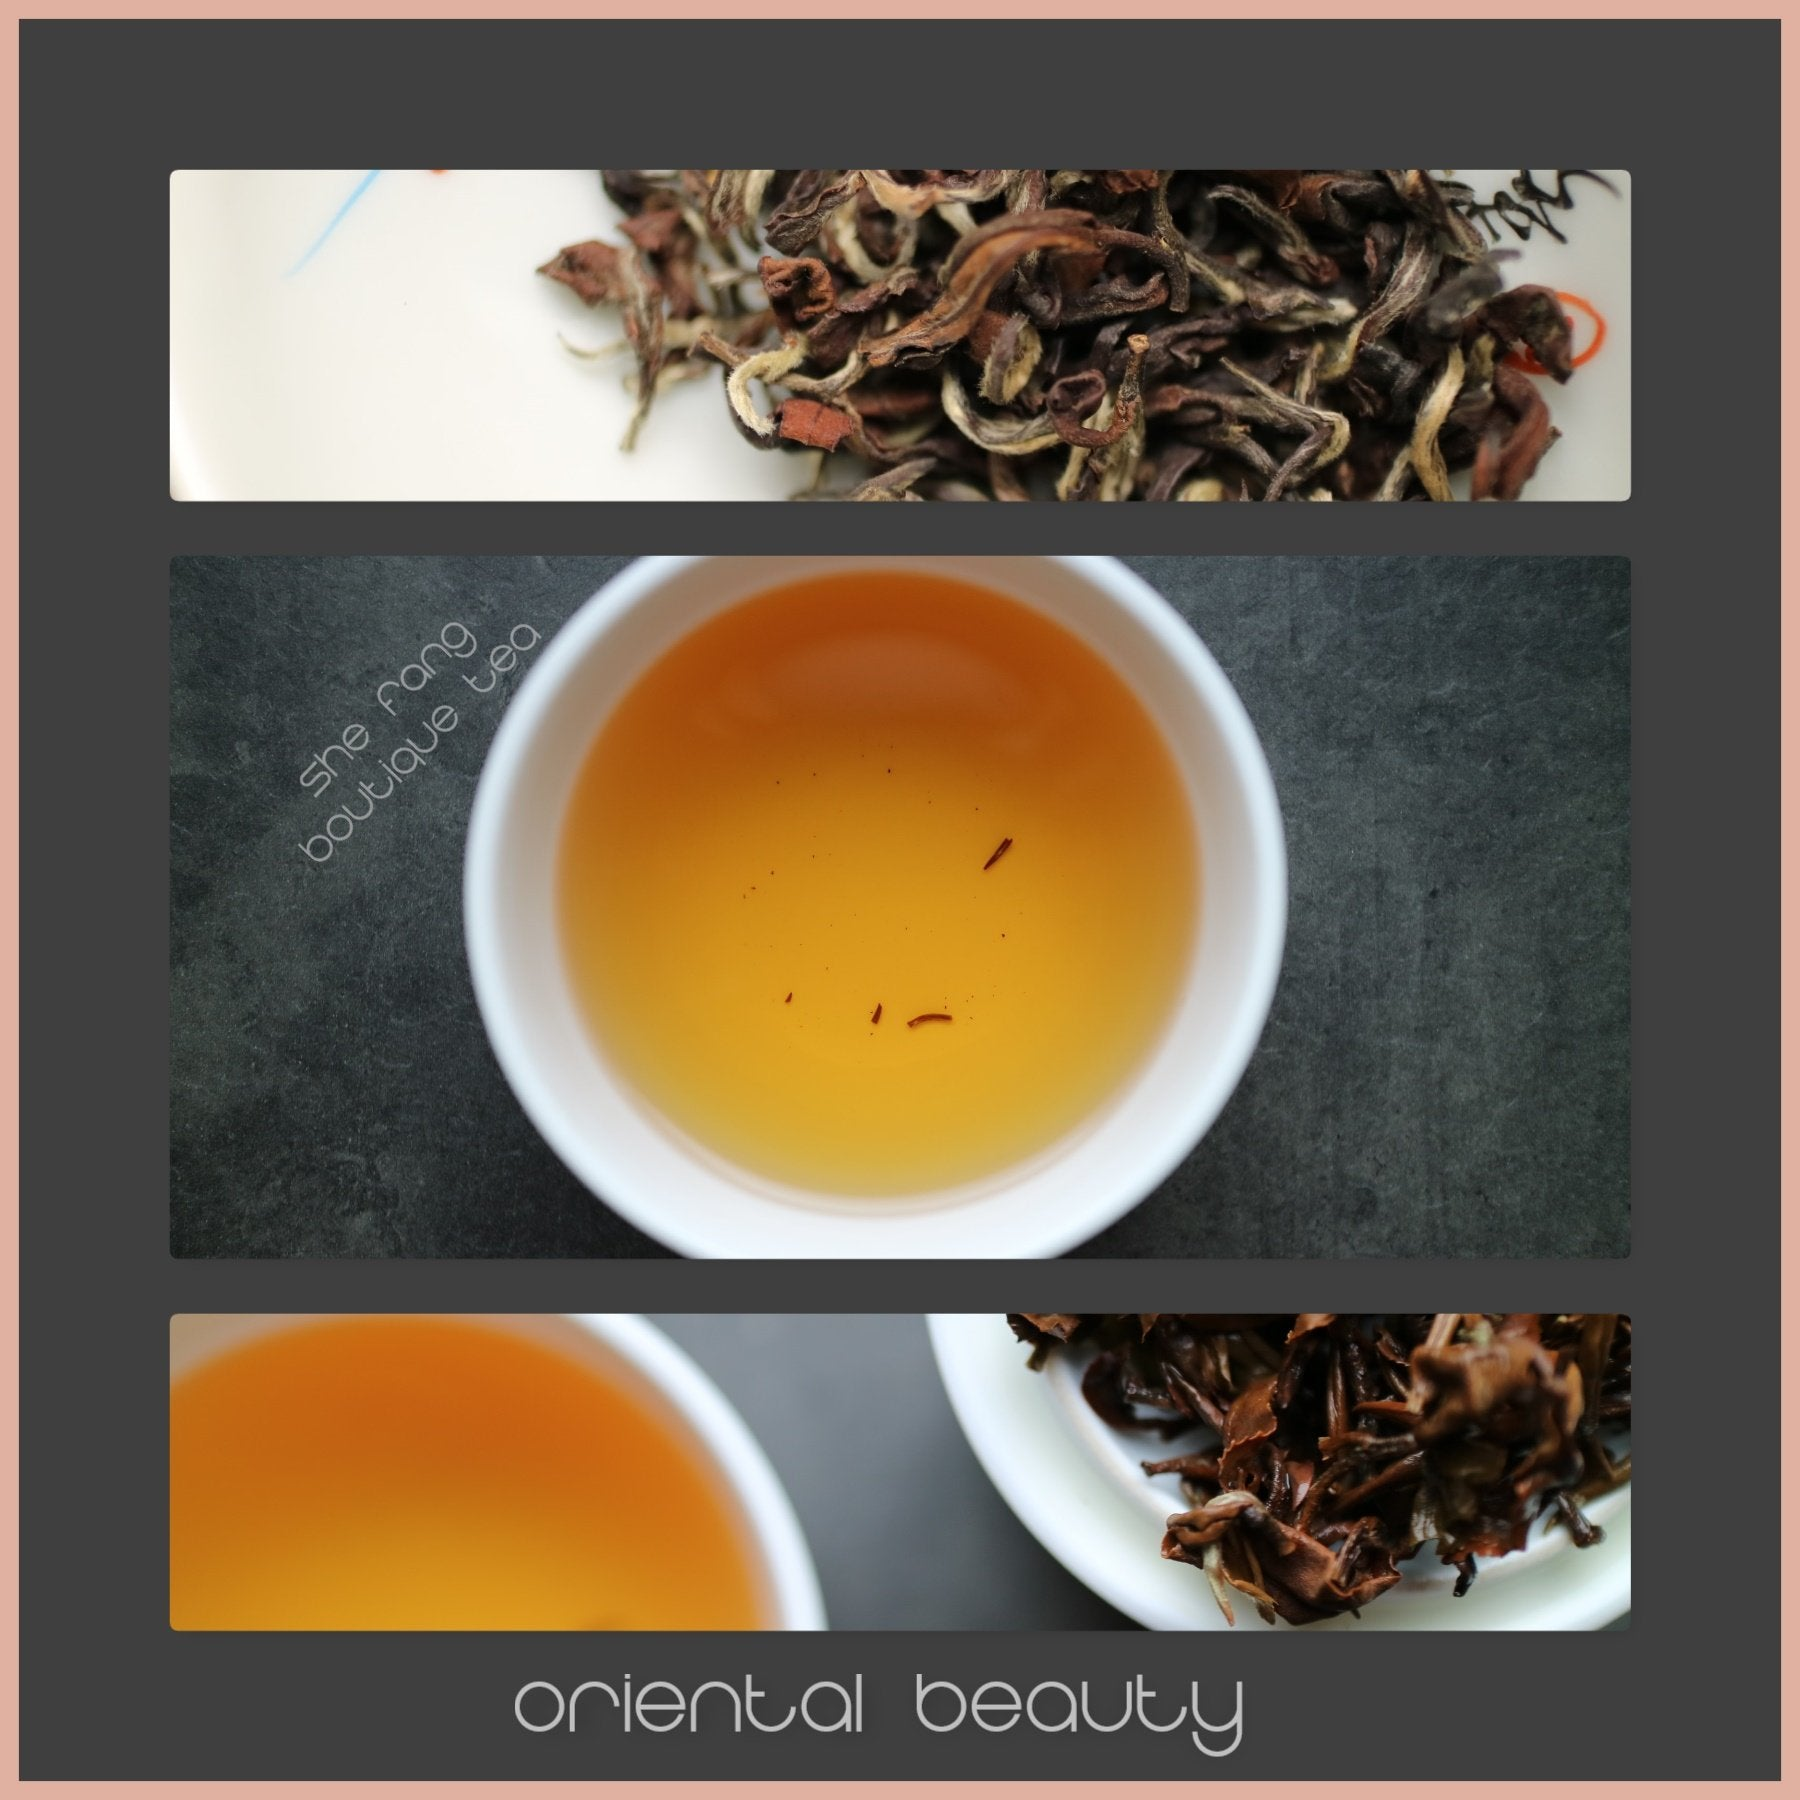 Tasting Notes - Oriental Beauty Top Superior